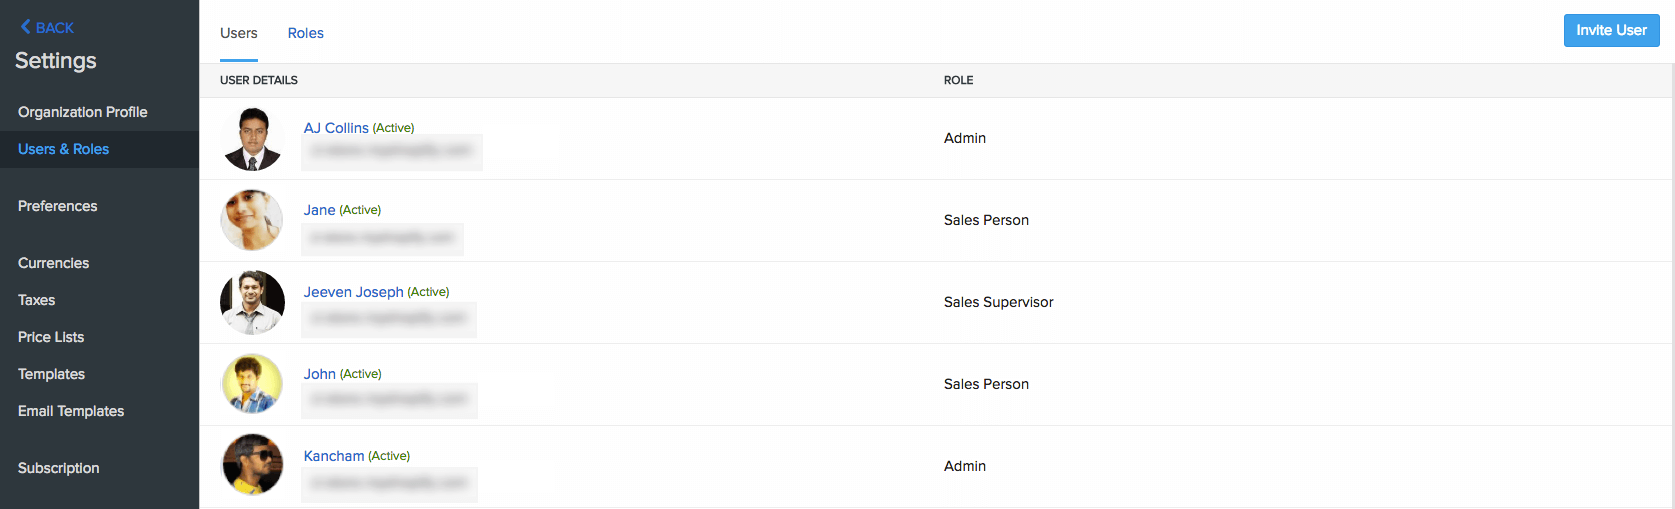 Users & roles page